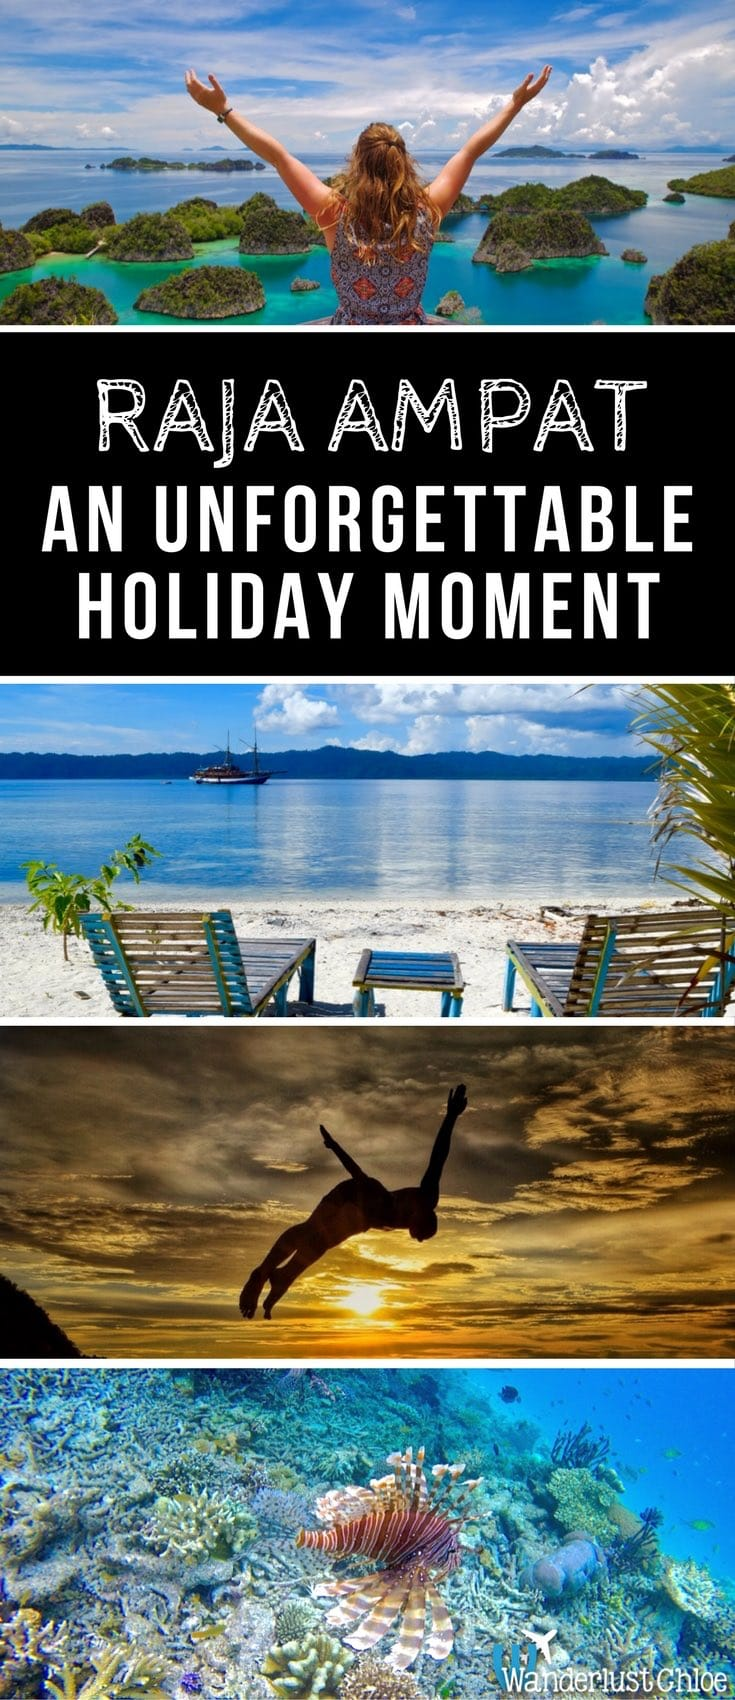 Raja Ampat, Indonesia - An Unforgettable Holiday Moment